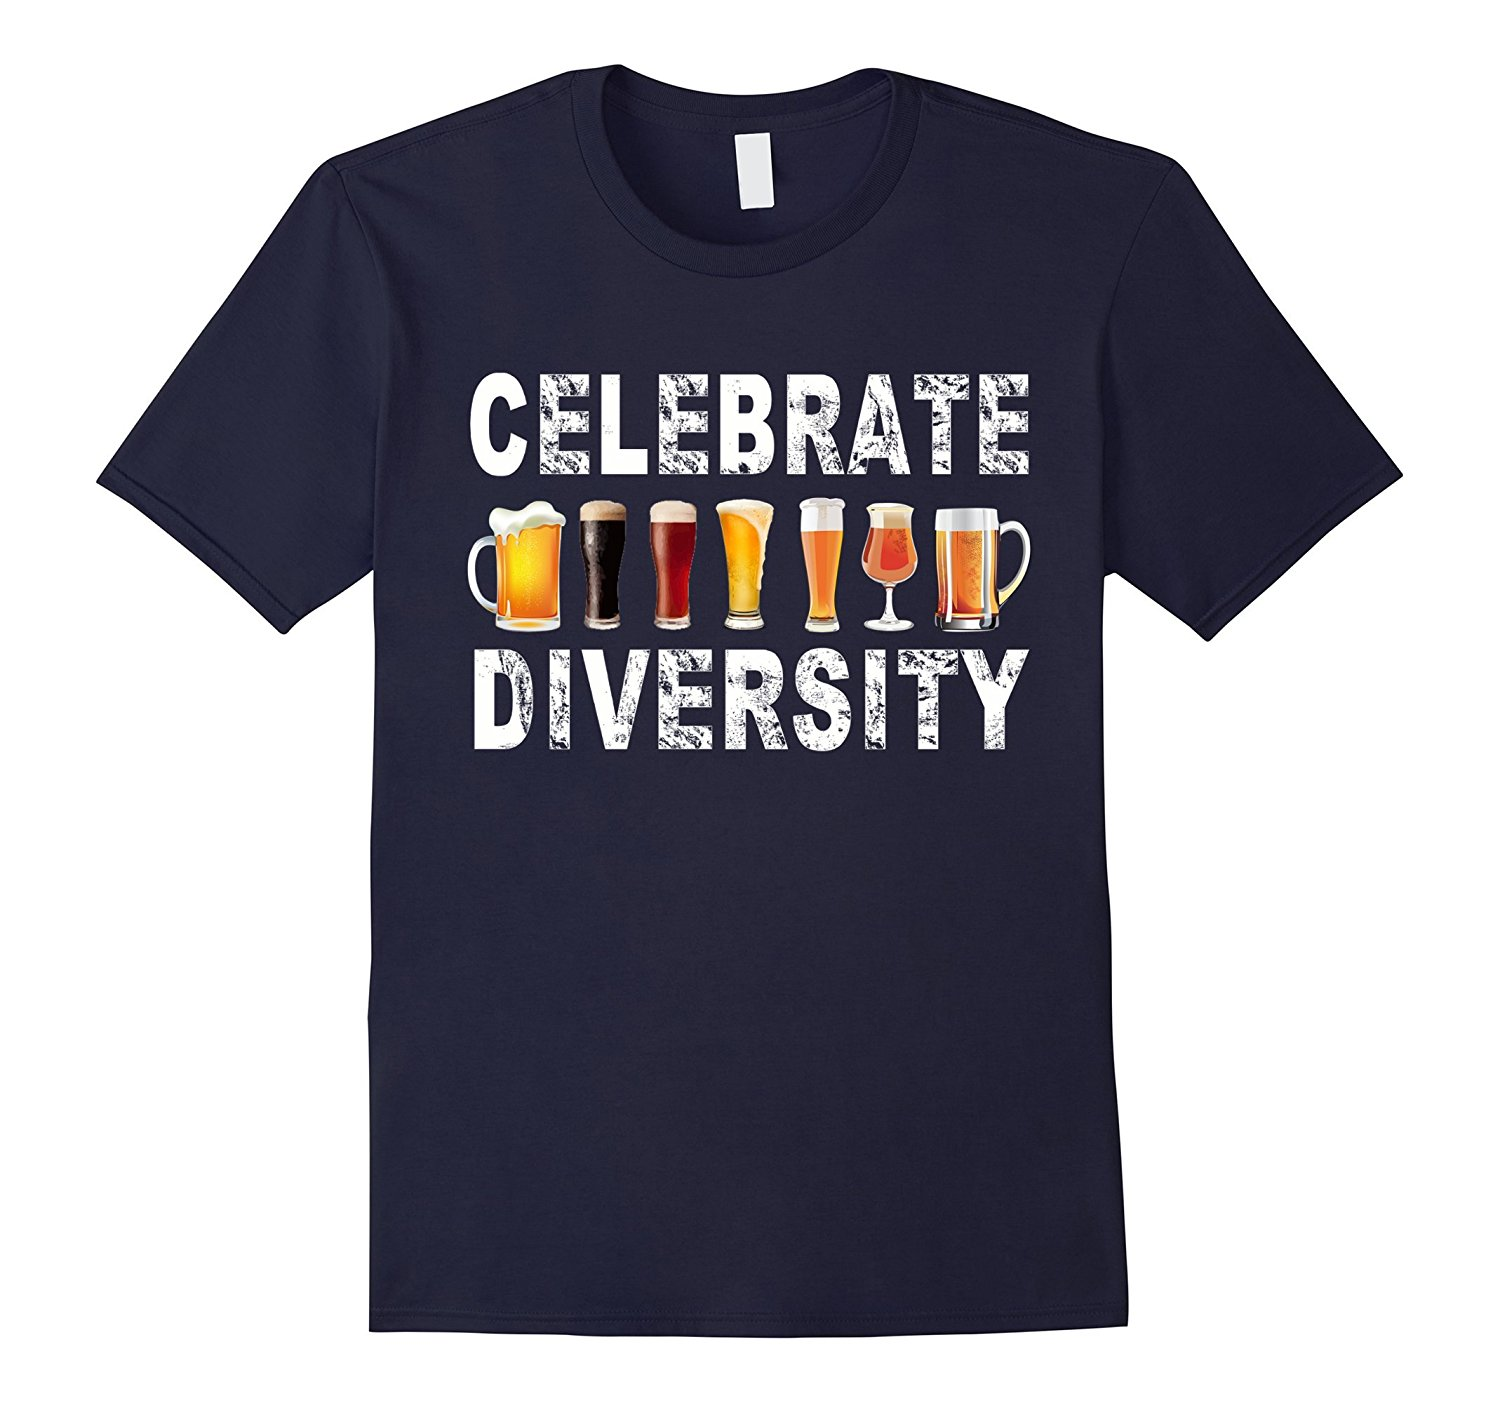 Celebrate Diversity Beer shirts